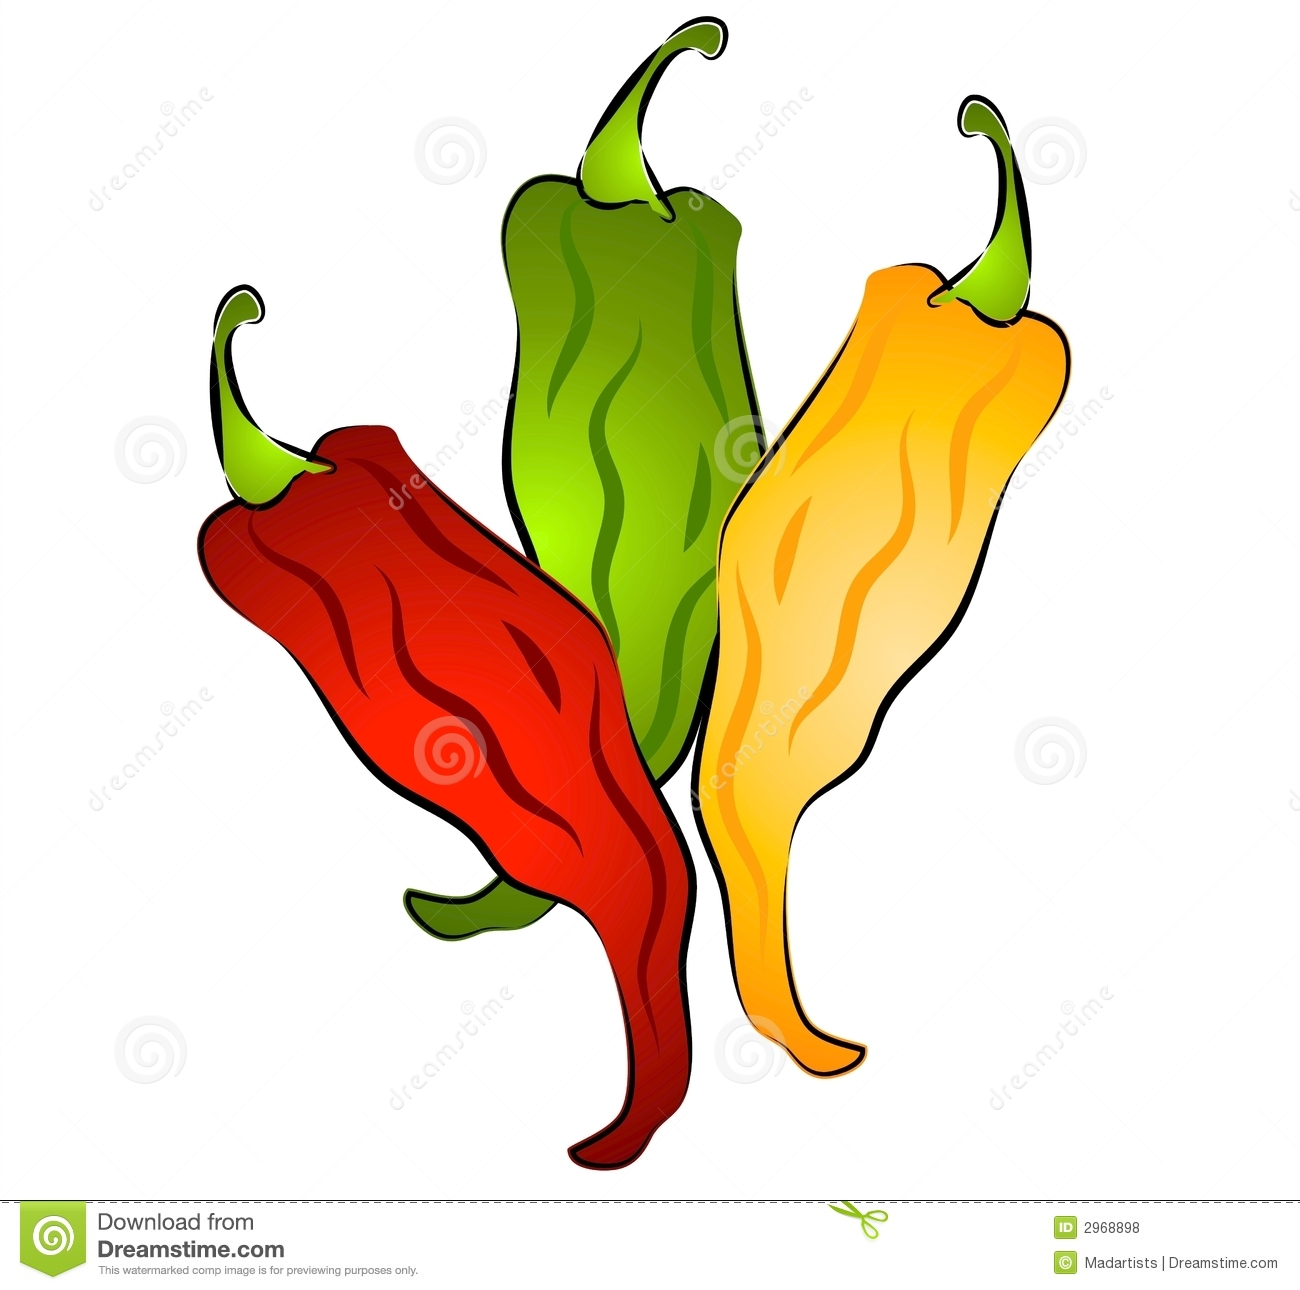 hot chili peppers clip art stock illustration illustration of rh dreamstime com chili pepper clipart black and white chili pepper clipart free